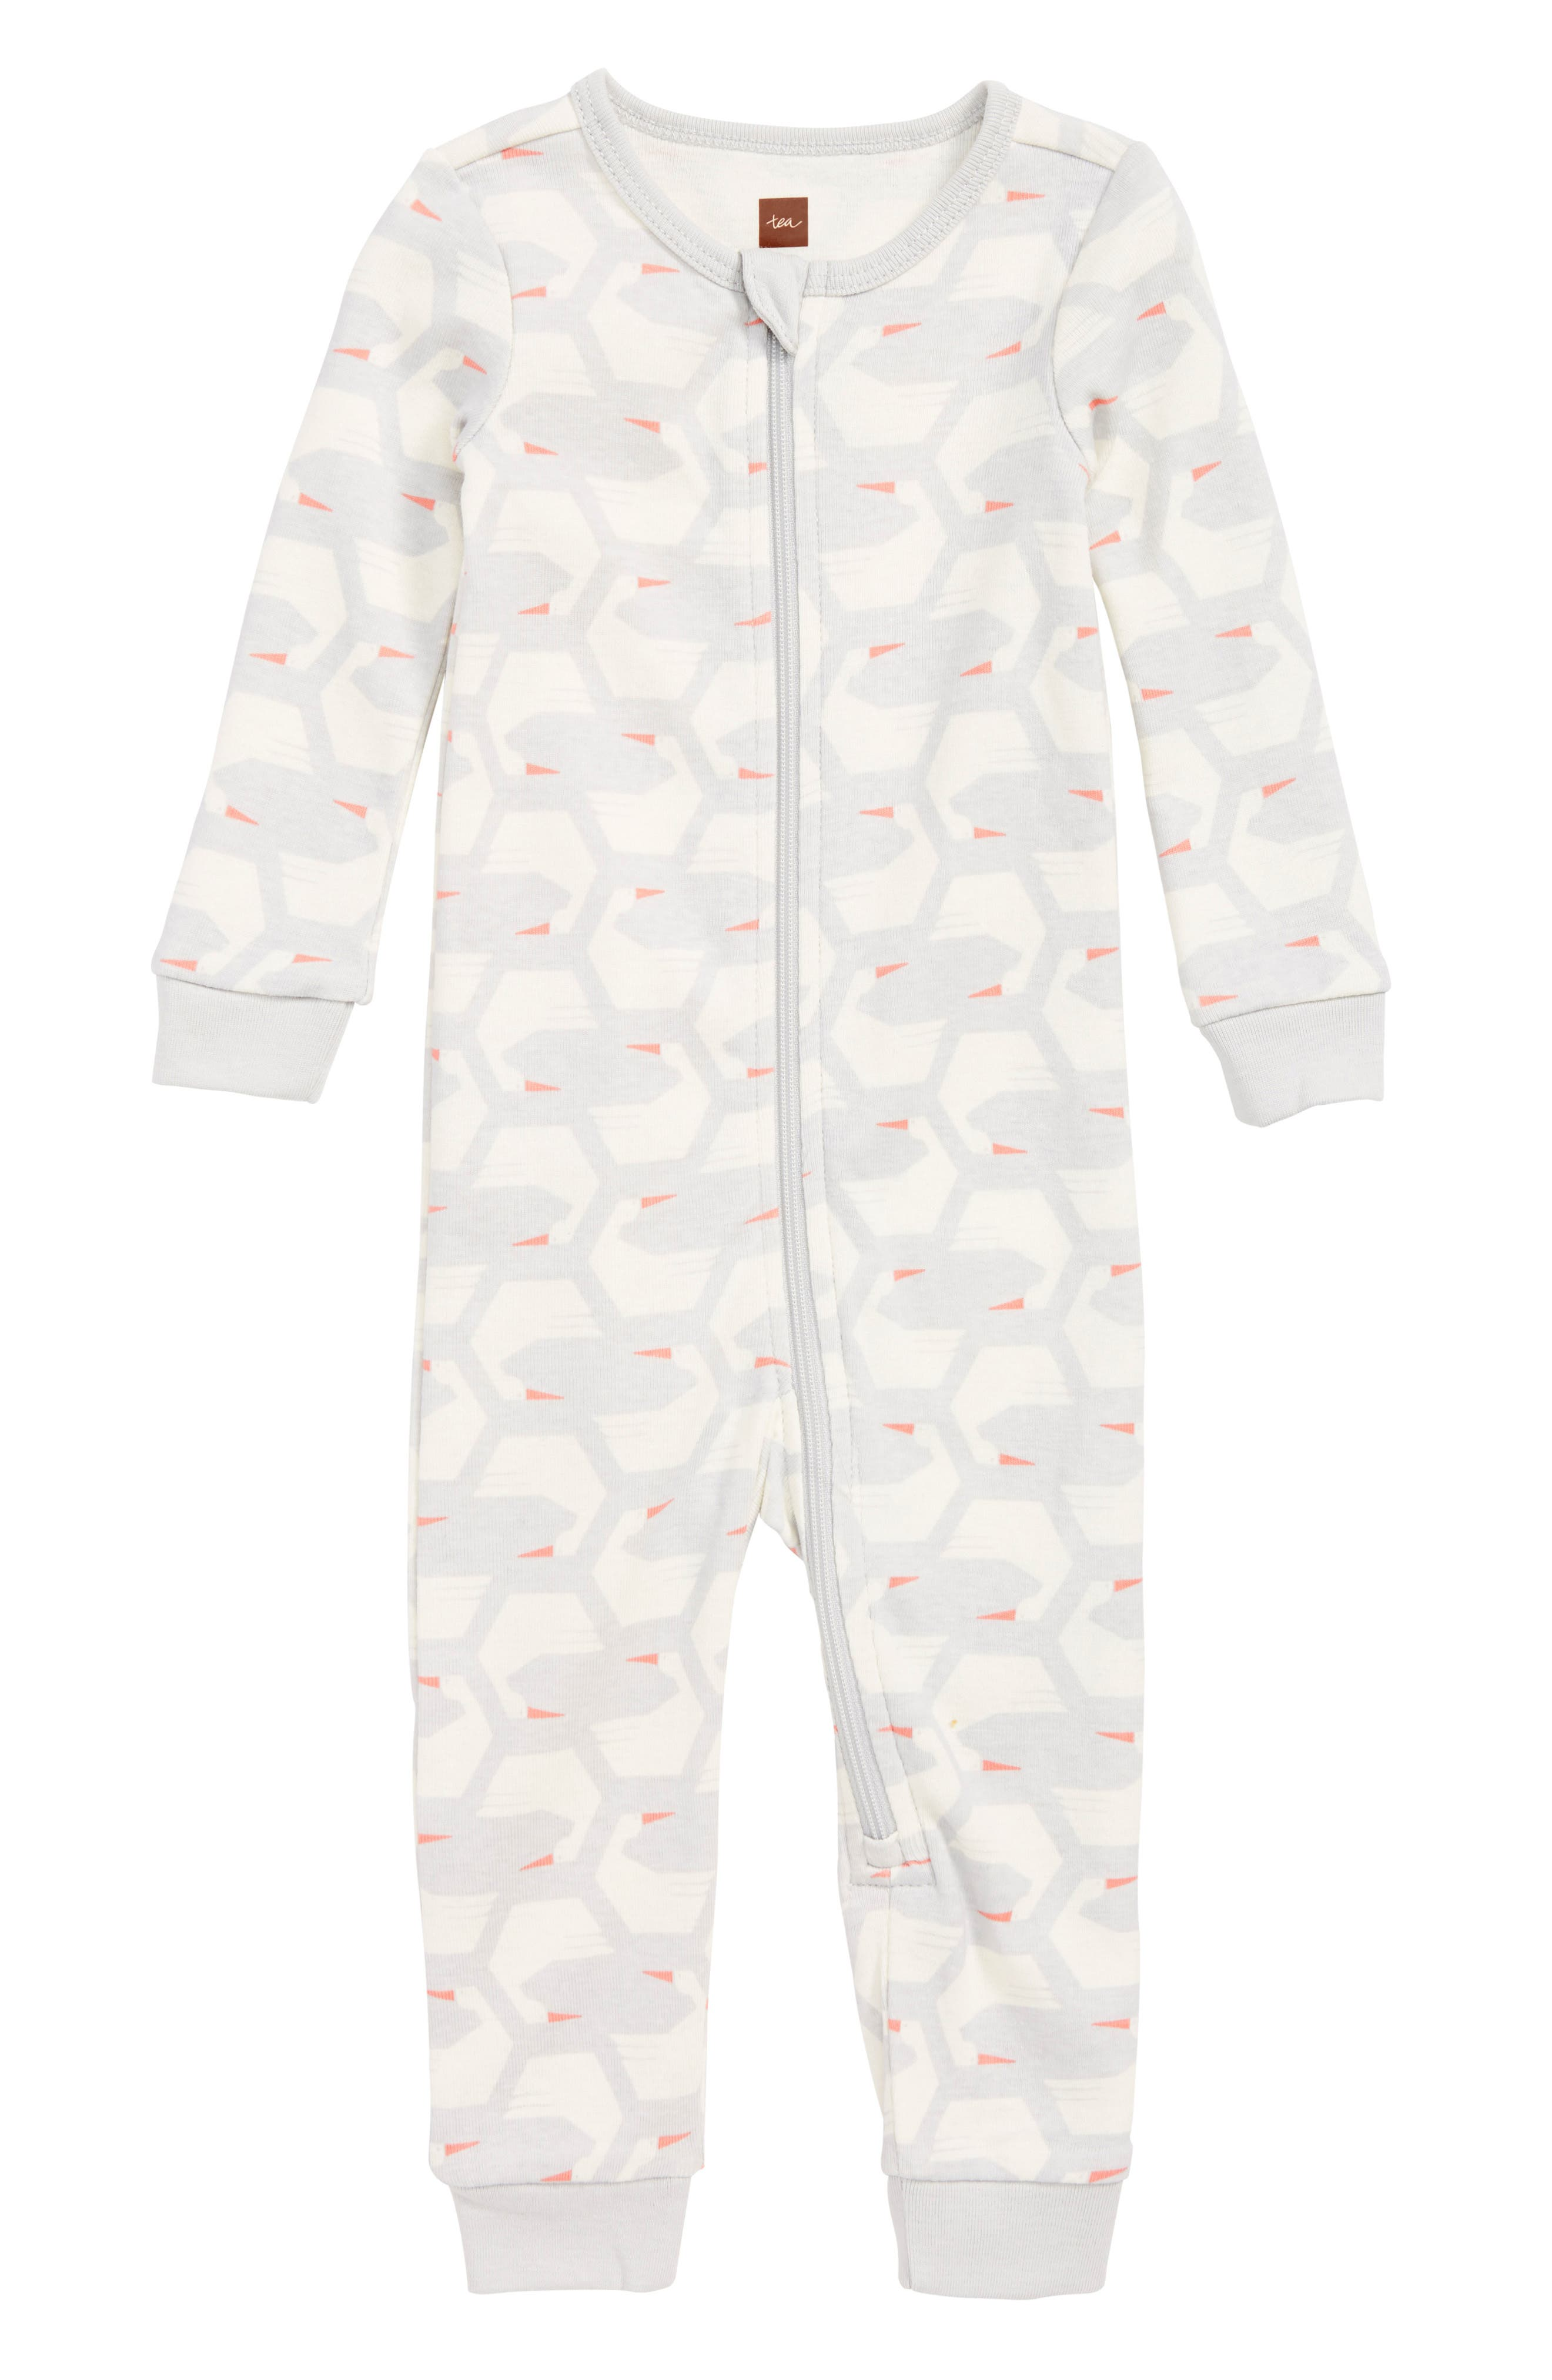 Fitted One-Piece Pajamas,                             Main thumbnail 1, color,                             023